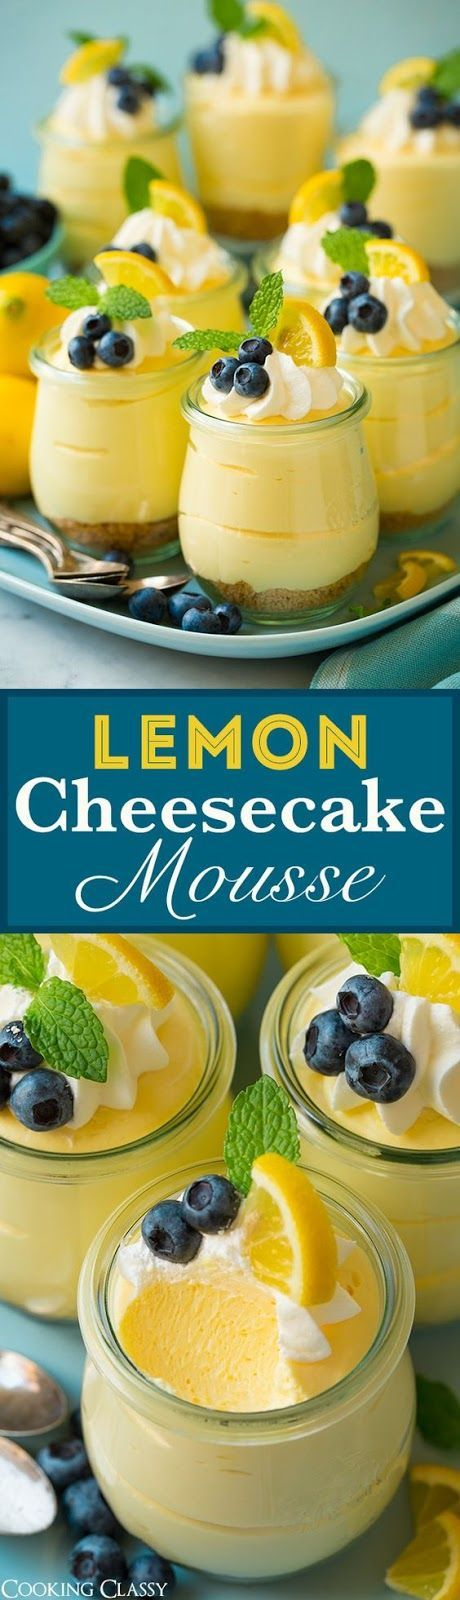 Lemon Cheesecake Mousse Could there be a better spring dessert?? In my opinion this one is hard to top! It's three of my favorite things...